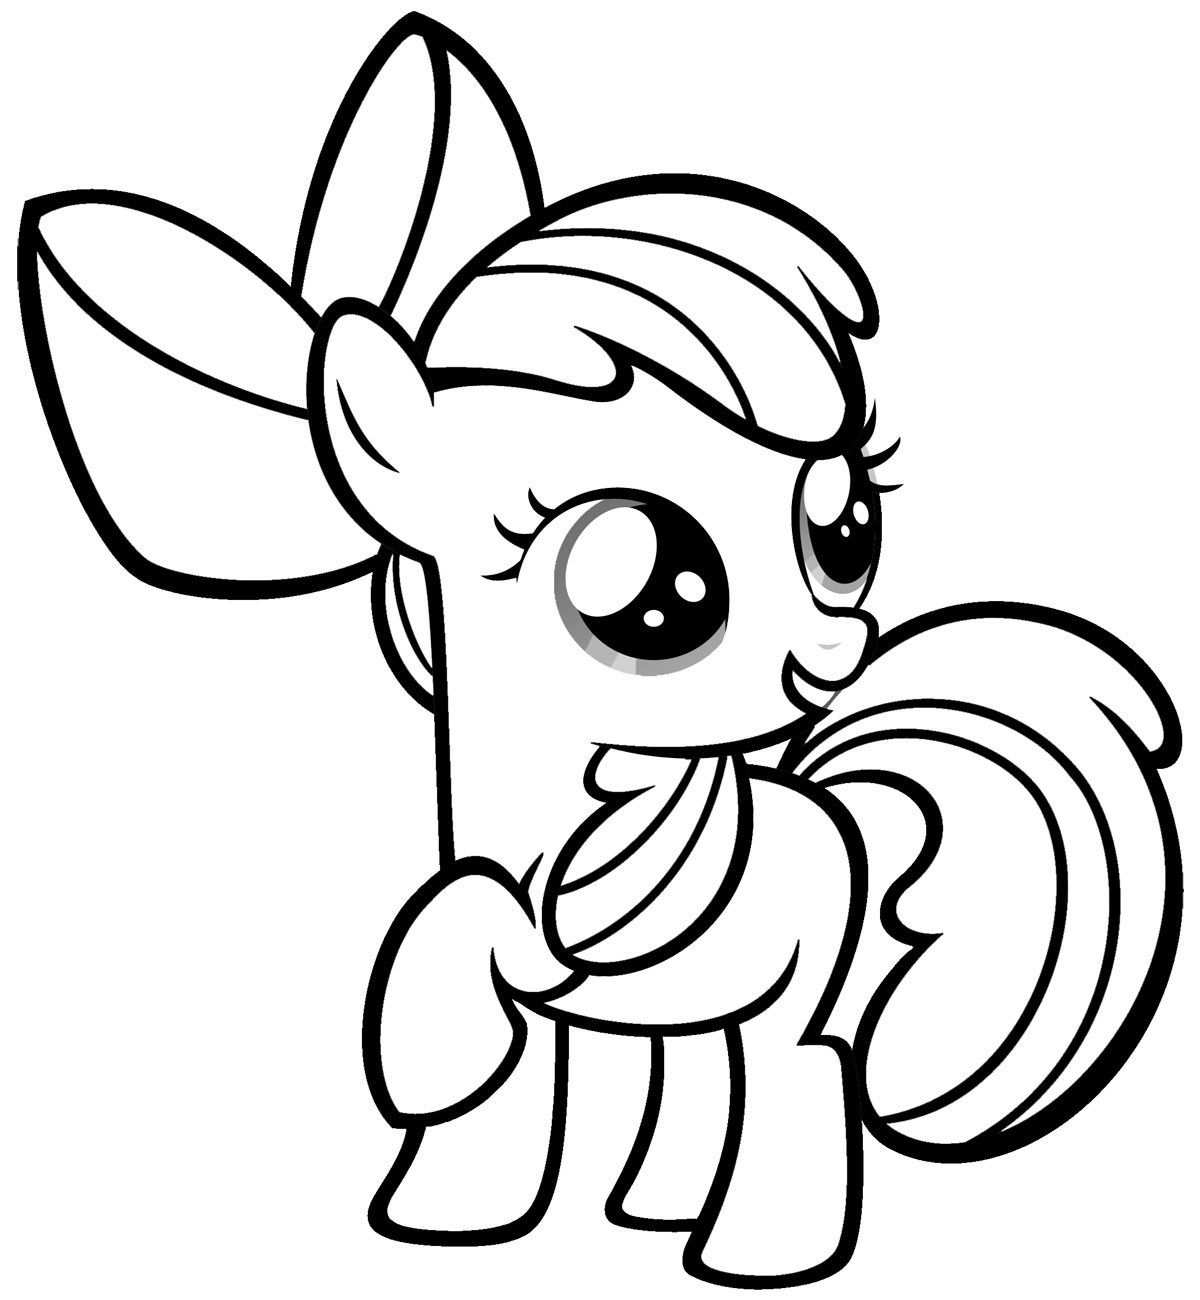 my little pony coloring pages to print free printable my little pony coloring pages for - Coling Pages